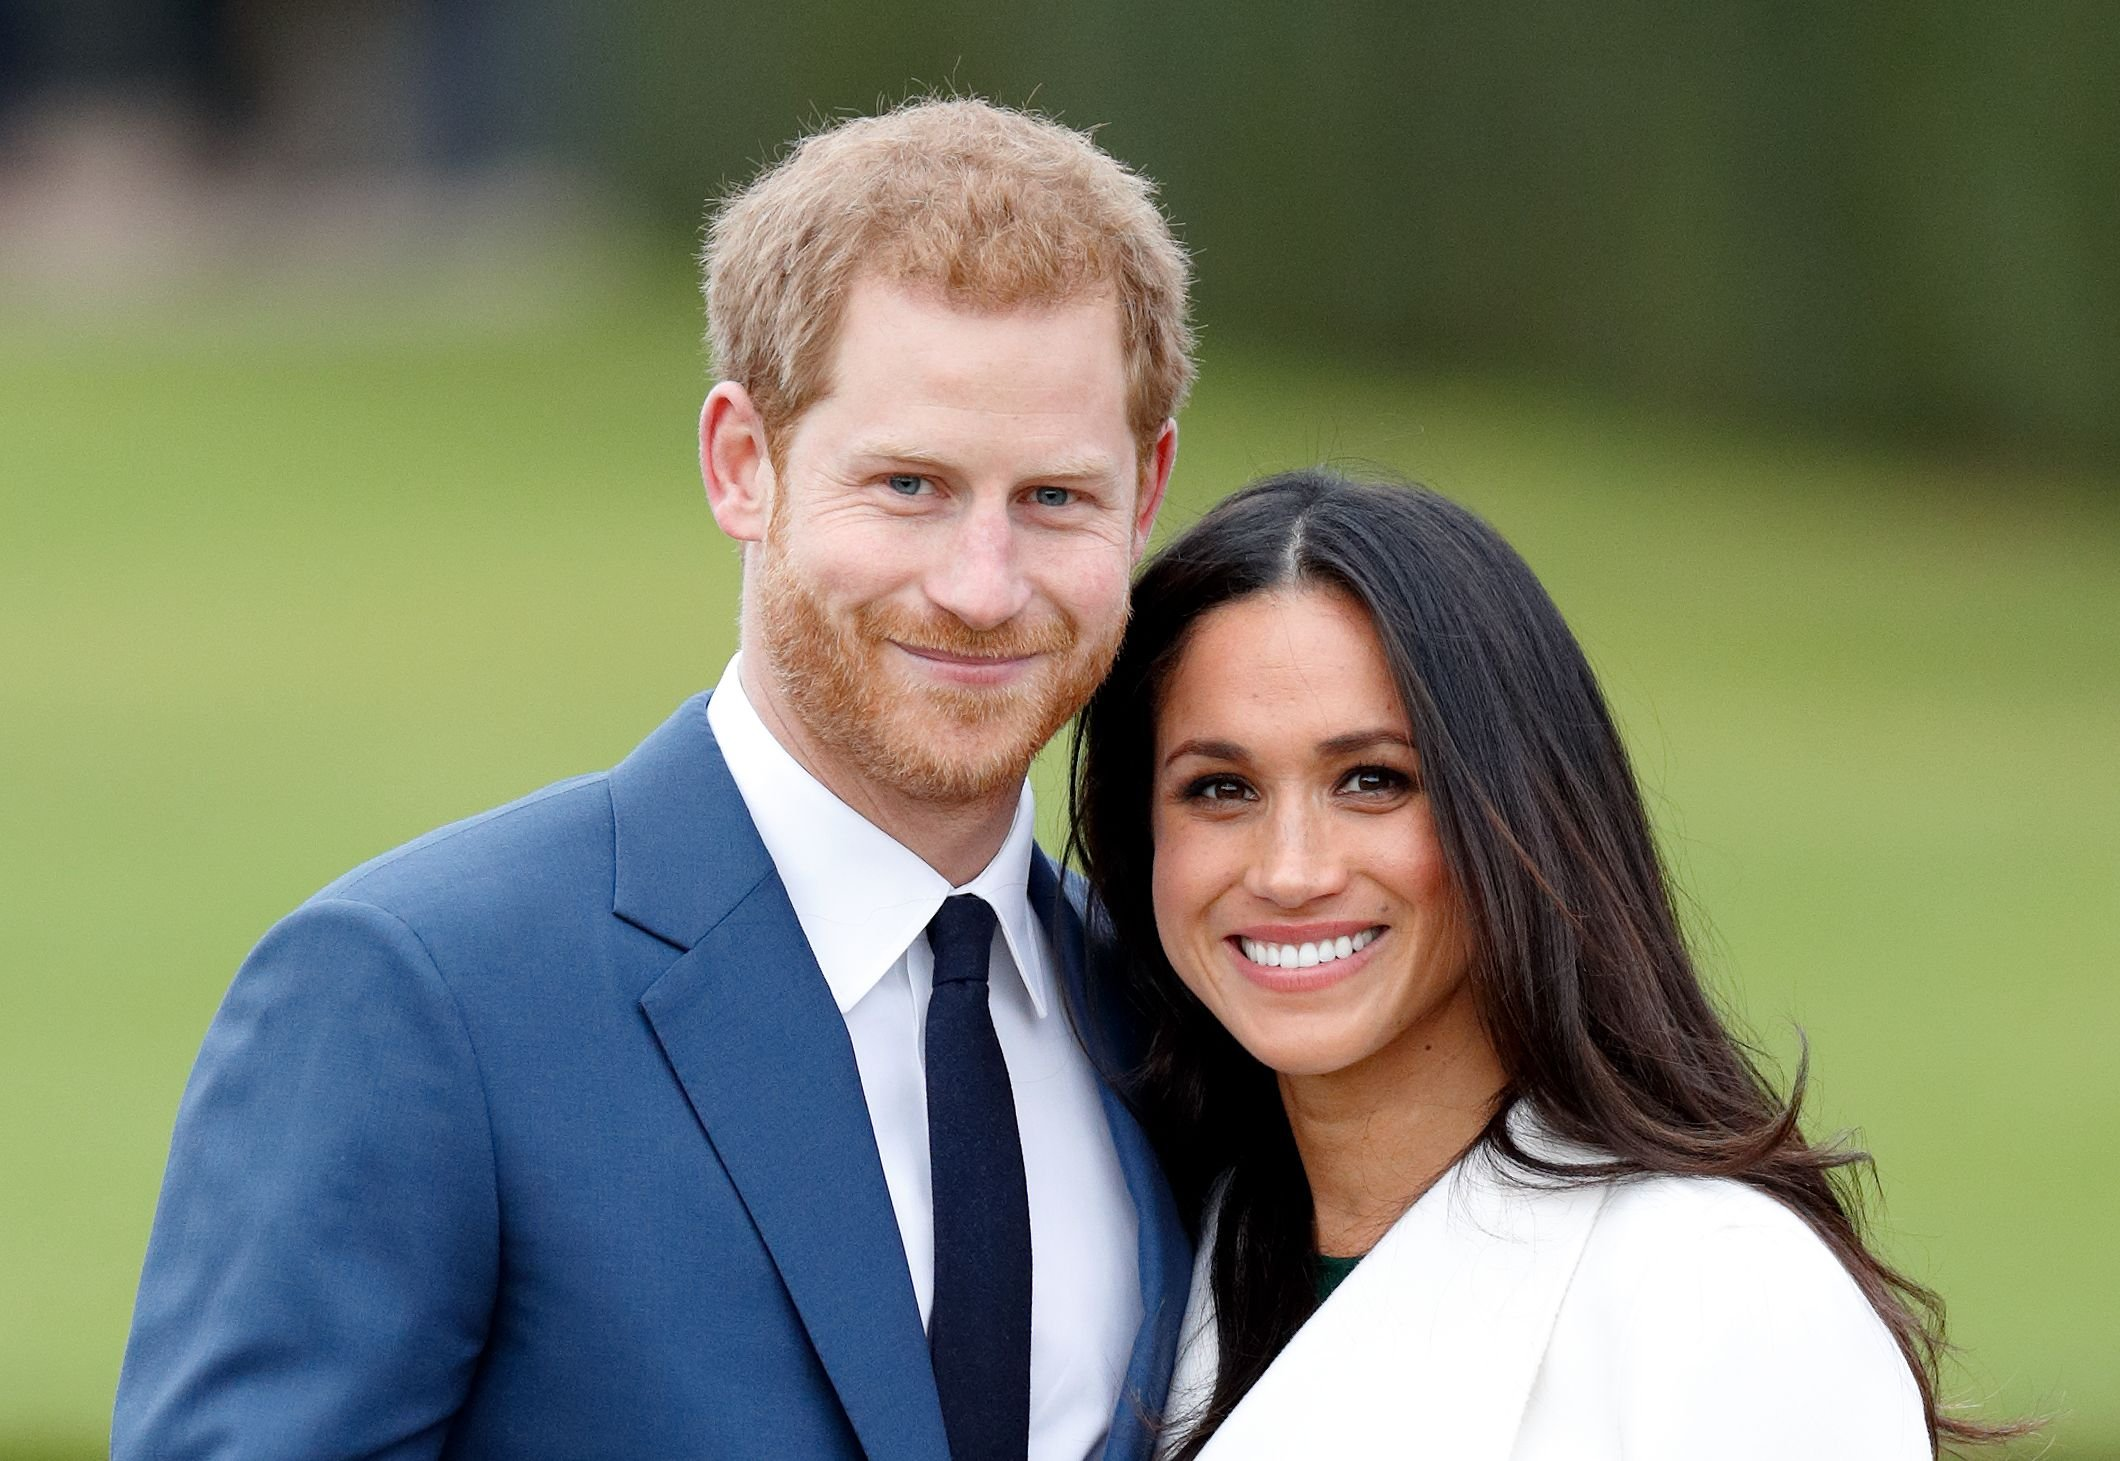 Prince Harry and Meghan Markle at an official photocall to announce their engagement at The Sunken Gardens, Kensington Palace on November 27, 2017 | Photo: Getty Images